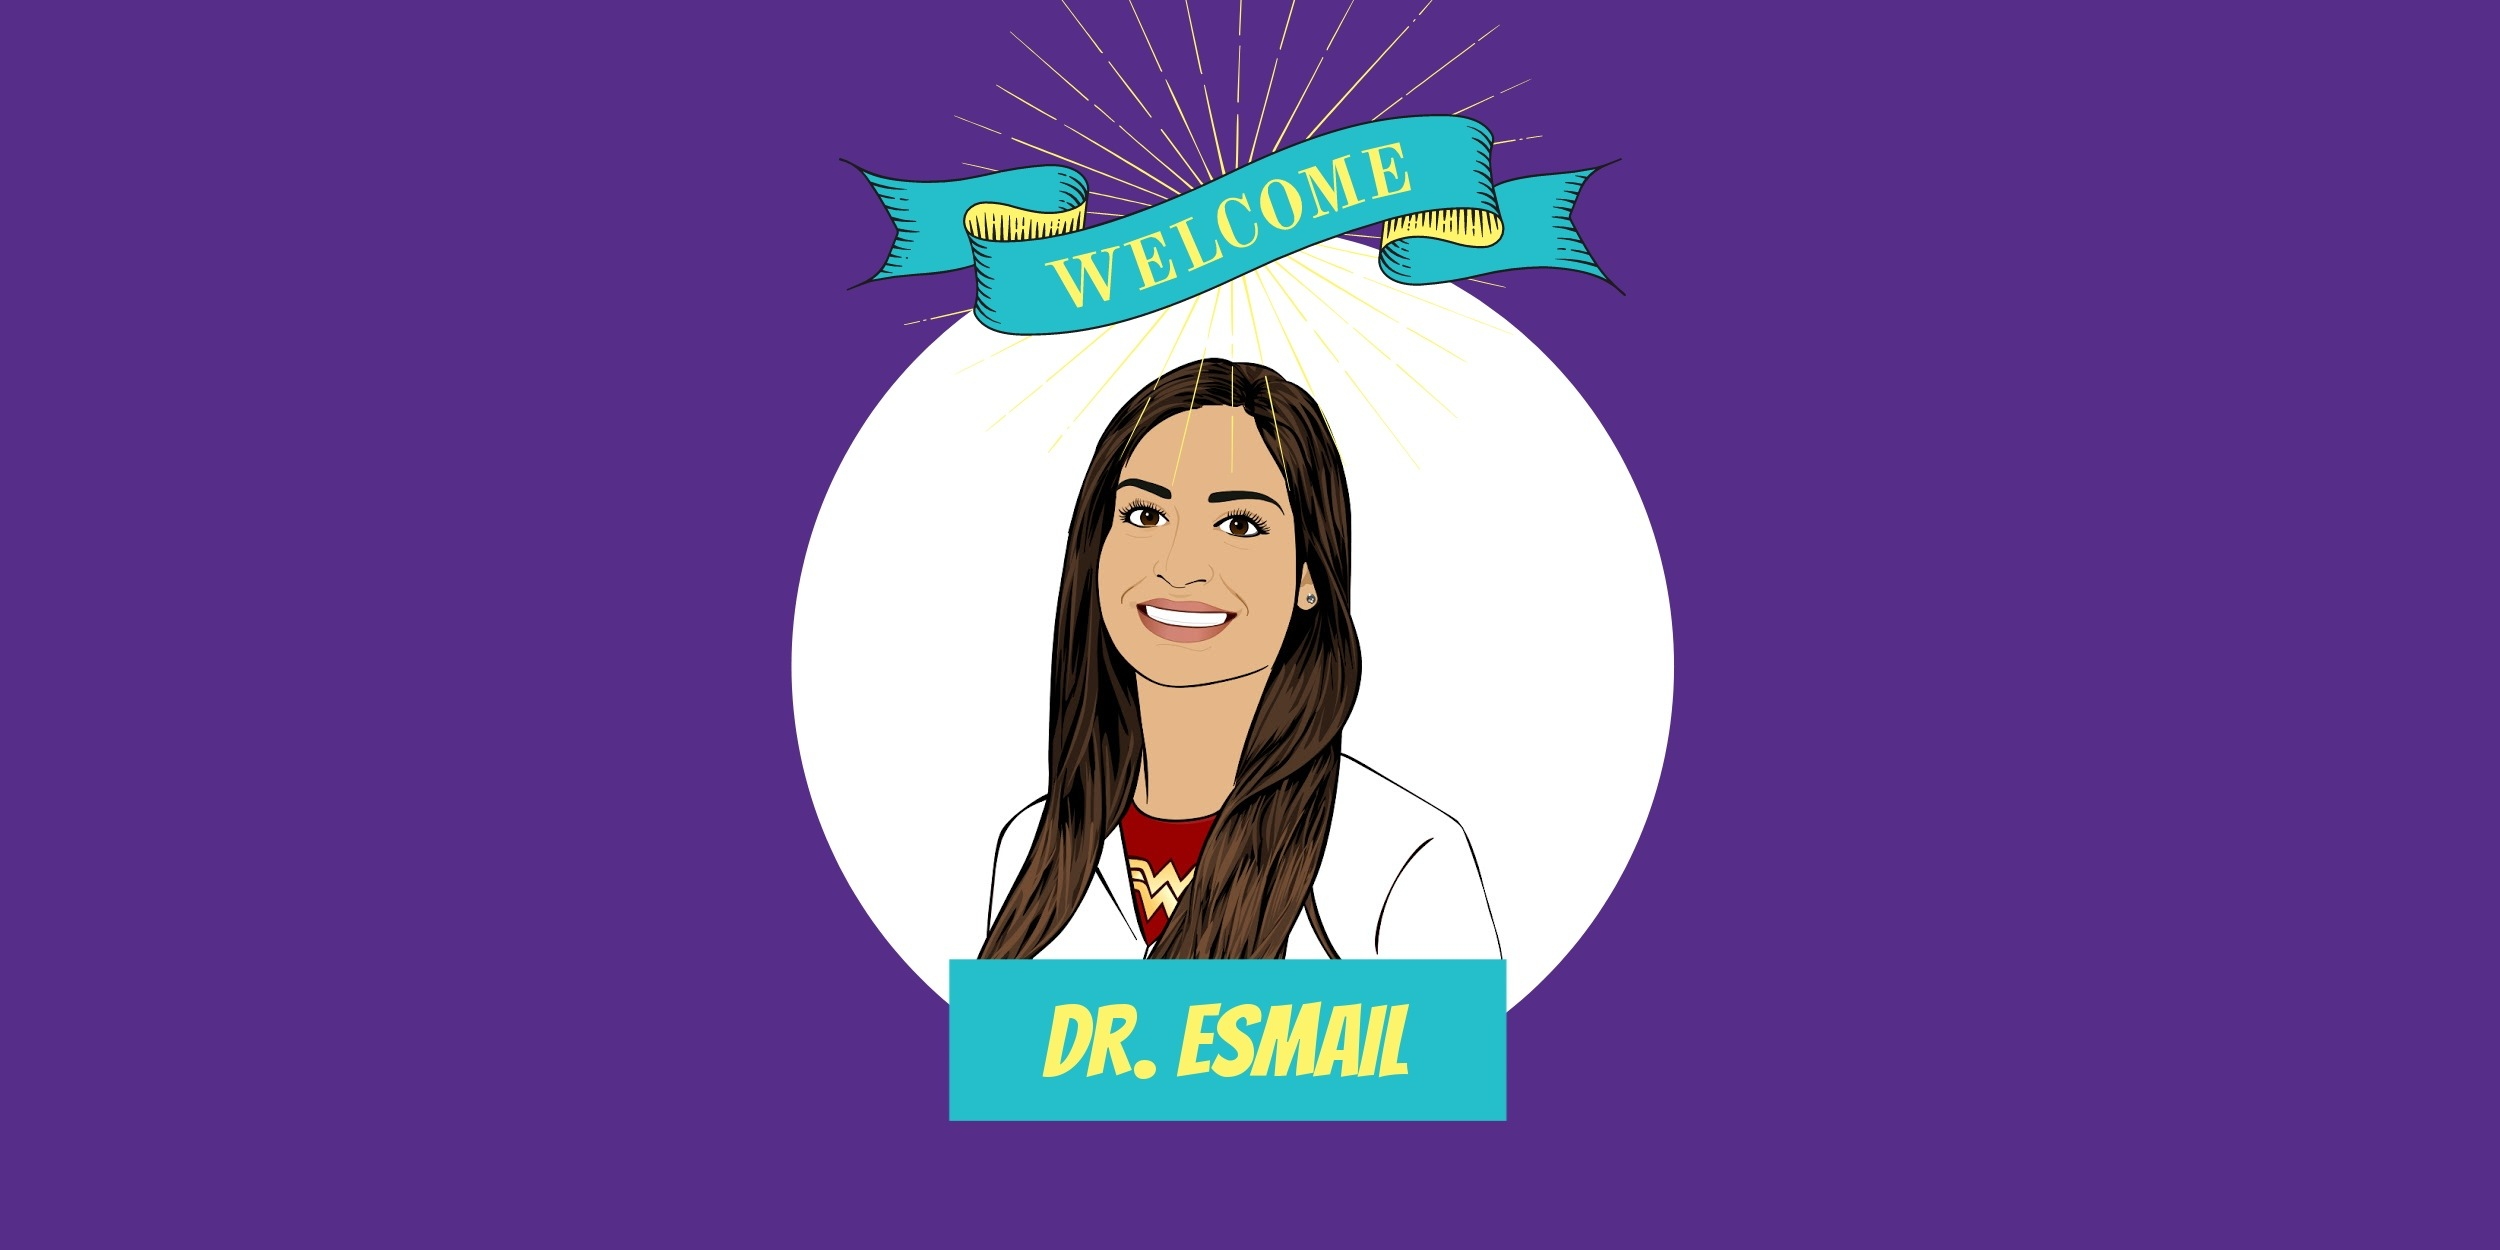 Welcoming: Dr. Esmail